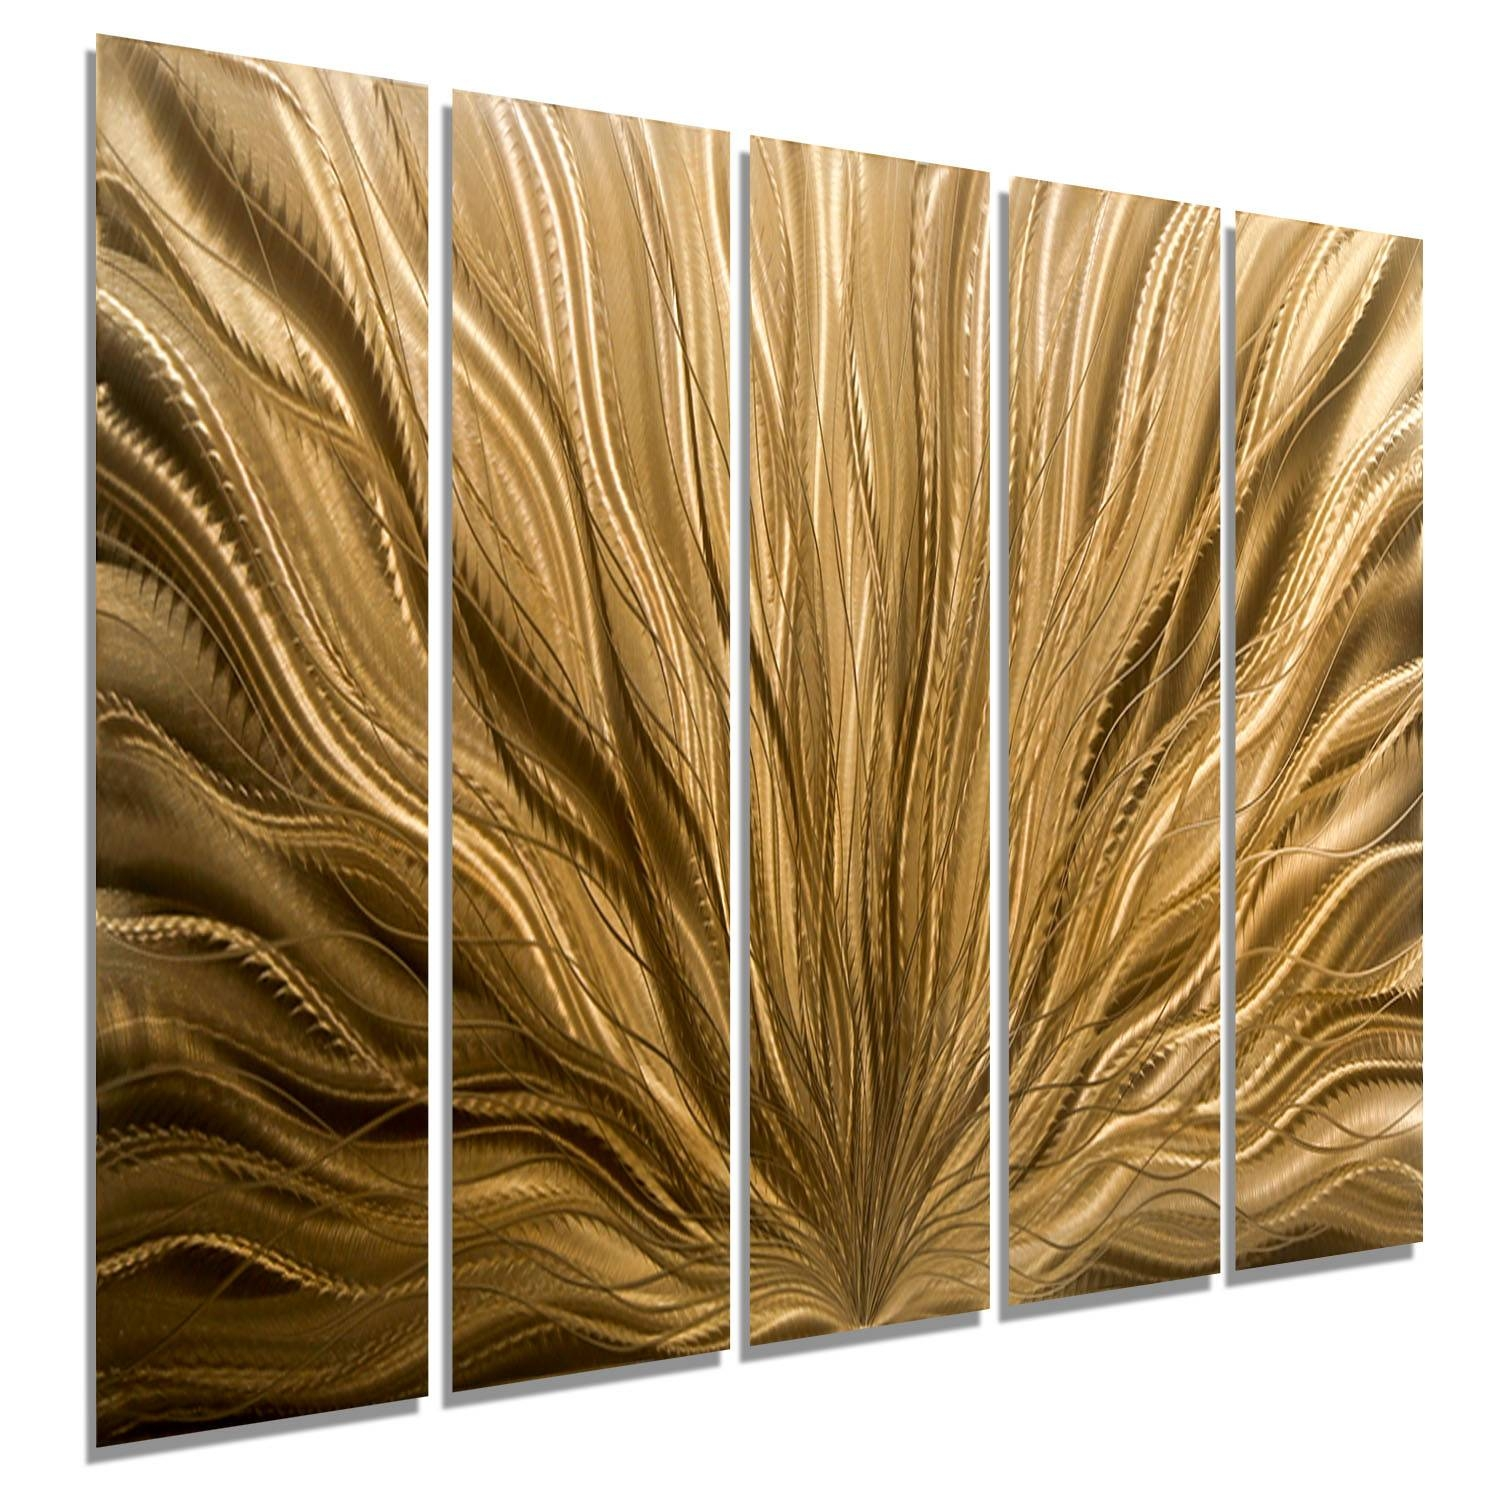 Copper Plumage Epic – Extra Large Light Copper Abstract Metal Wall Throughout Newest Big Metal Wall Art (View 6 of 15)